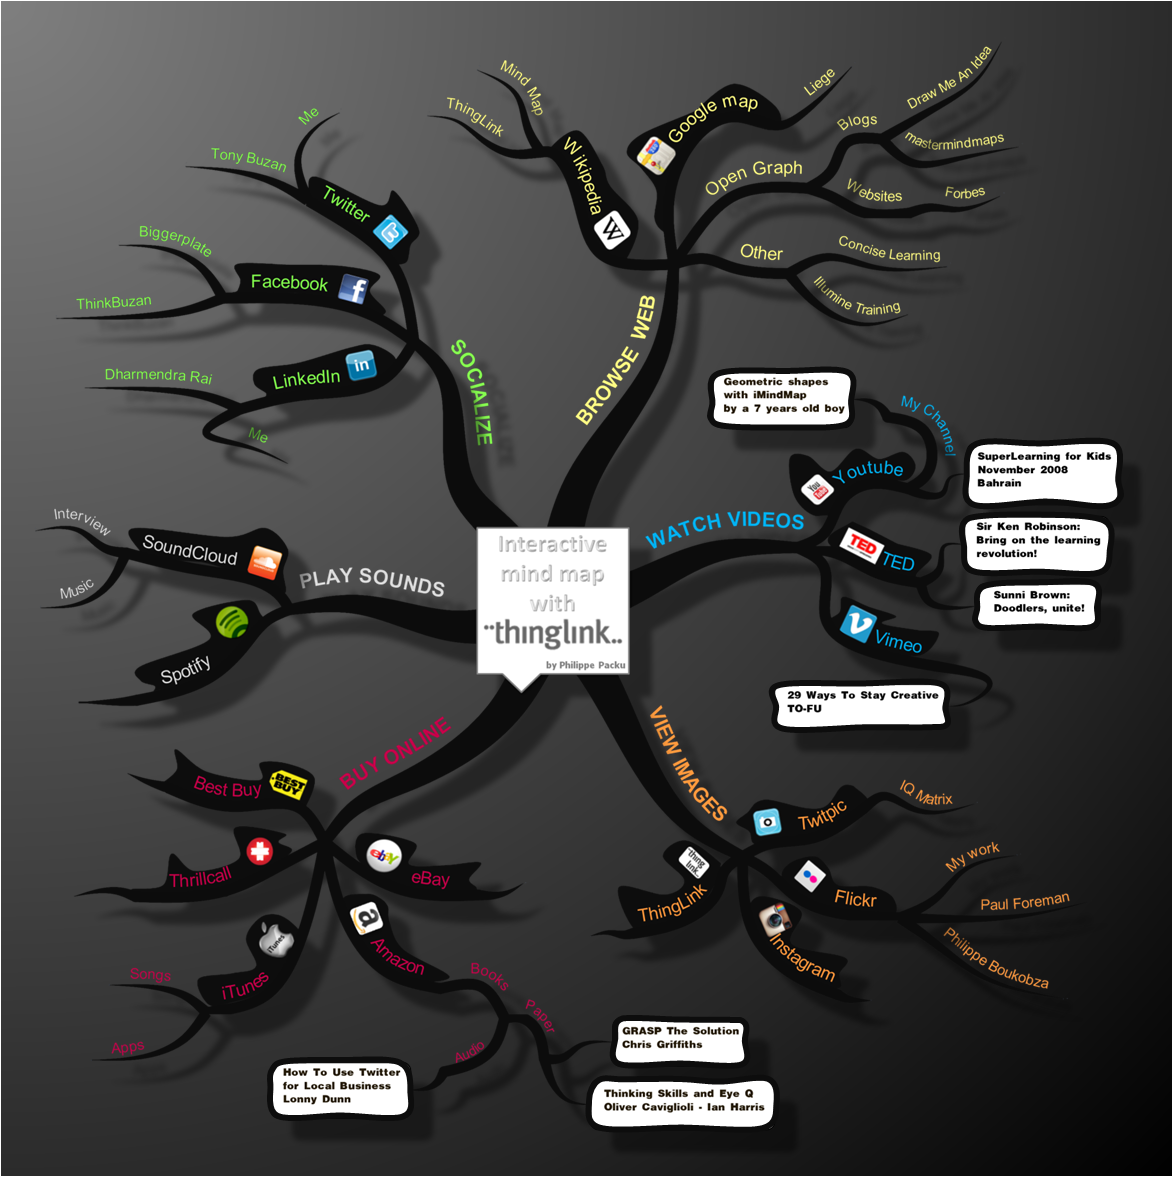 Interactive mind map with ThingLink